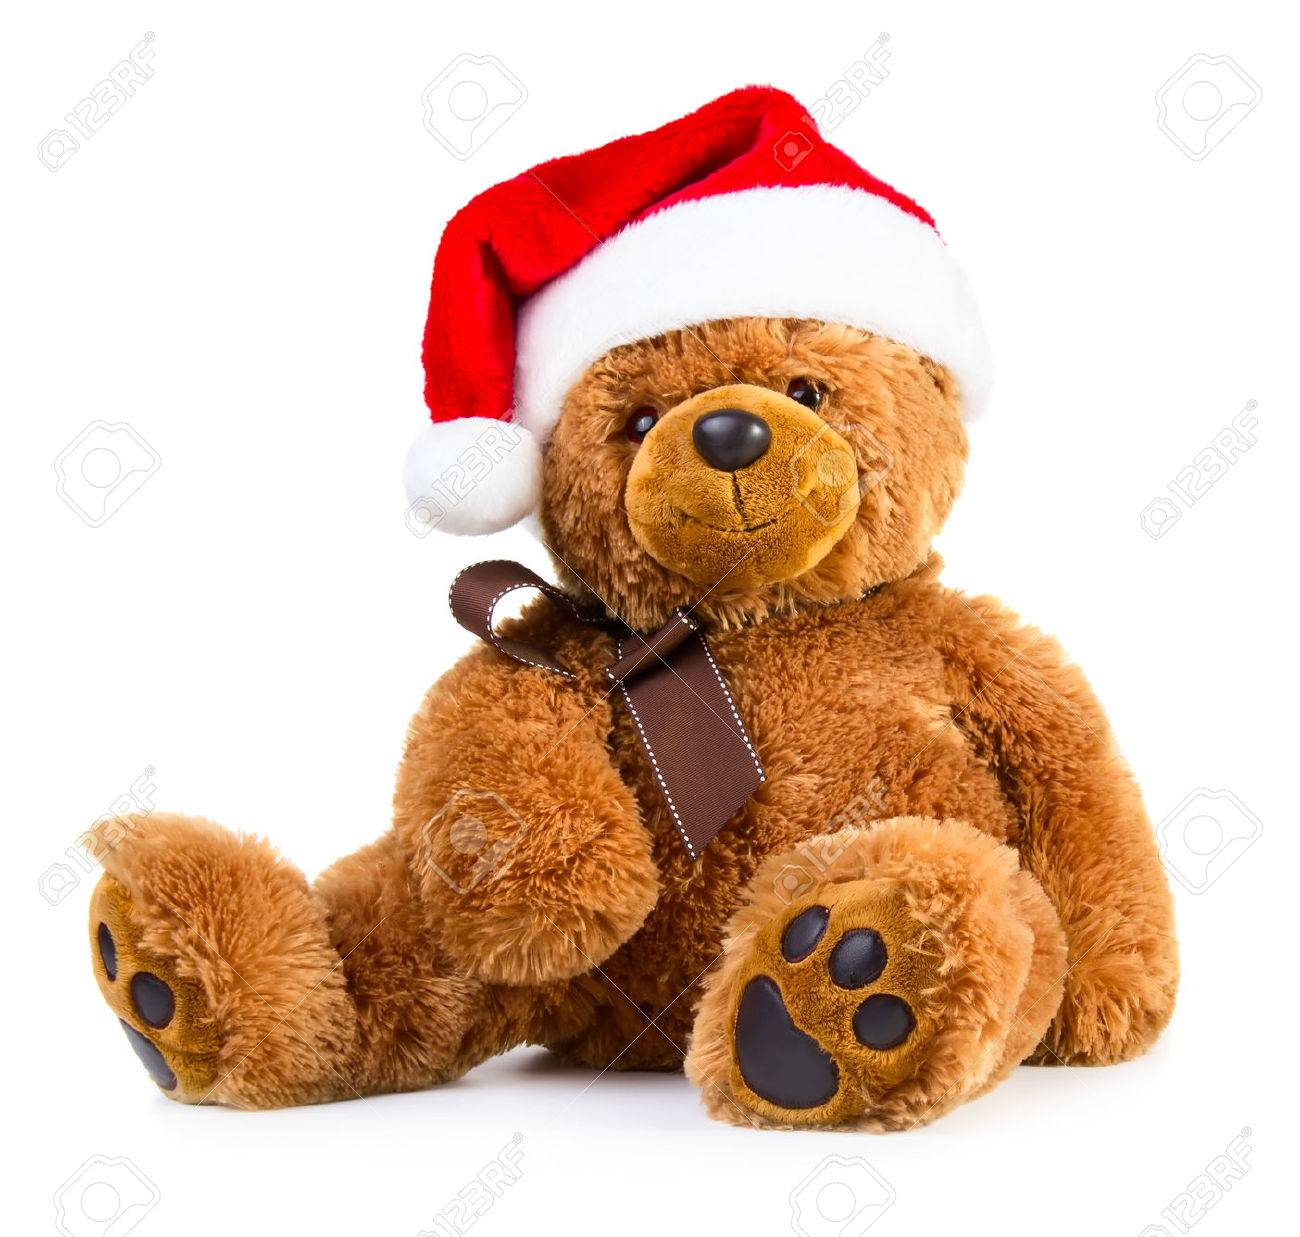 74b928343cd14 Stock Photo - Teddy bear wearing a santa hat isolated on white background